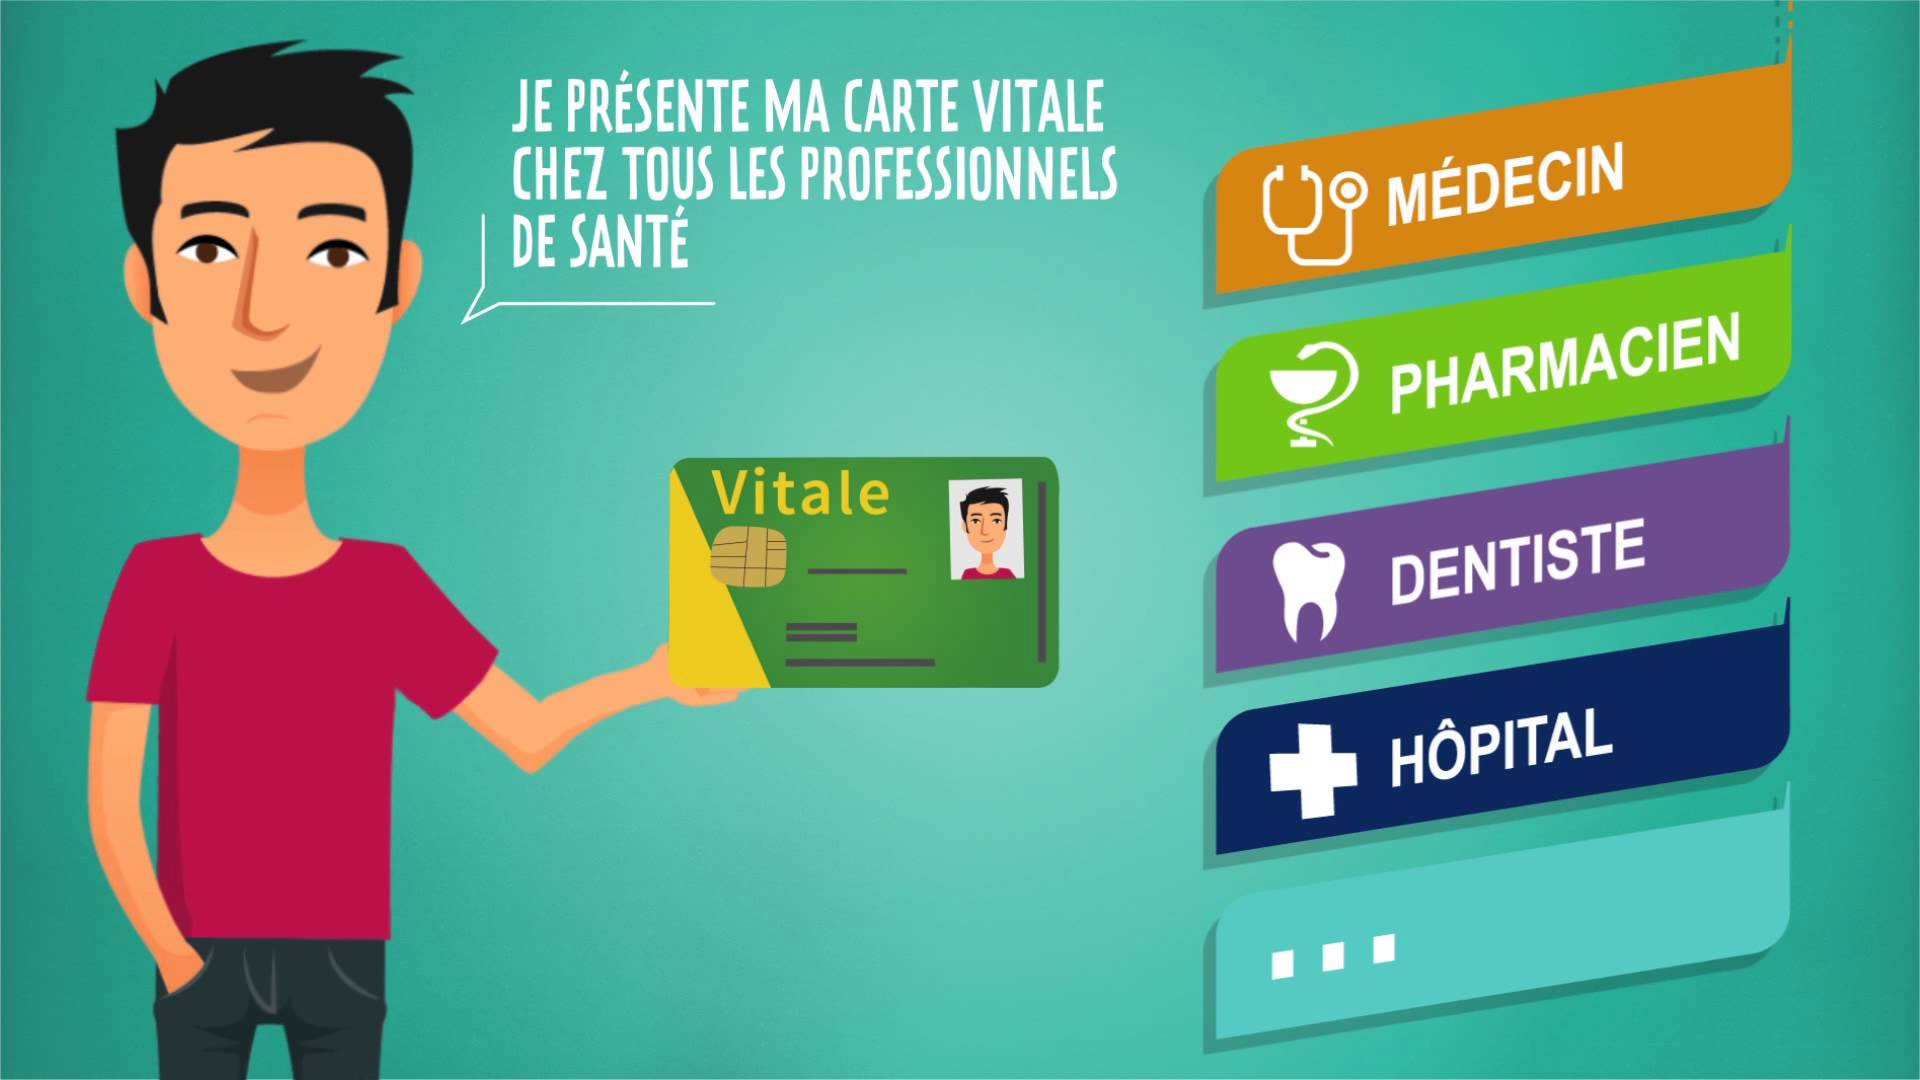 How To Get Your Carte Vitale My Life Living Abroad